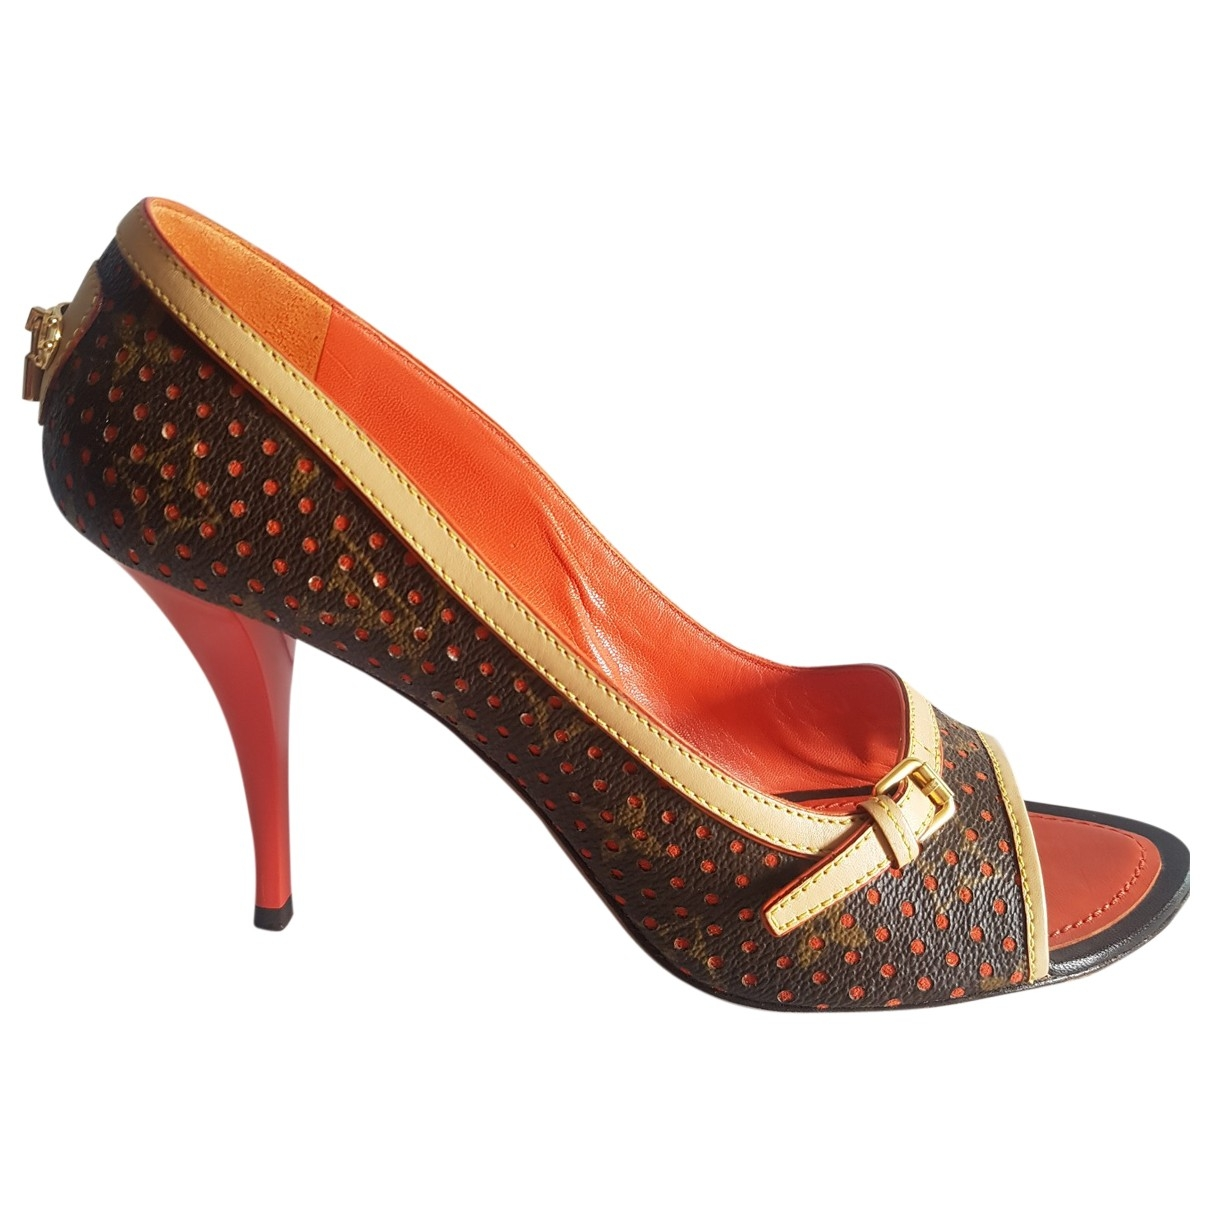 Louis Vuitton \N Orange Leather Sandals for Women 41 EU